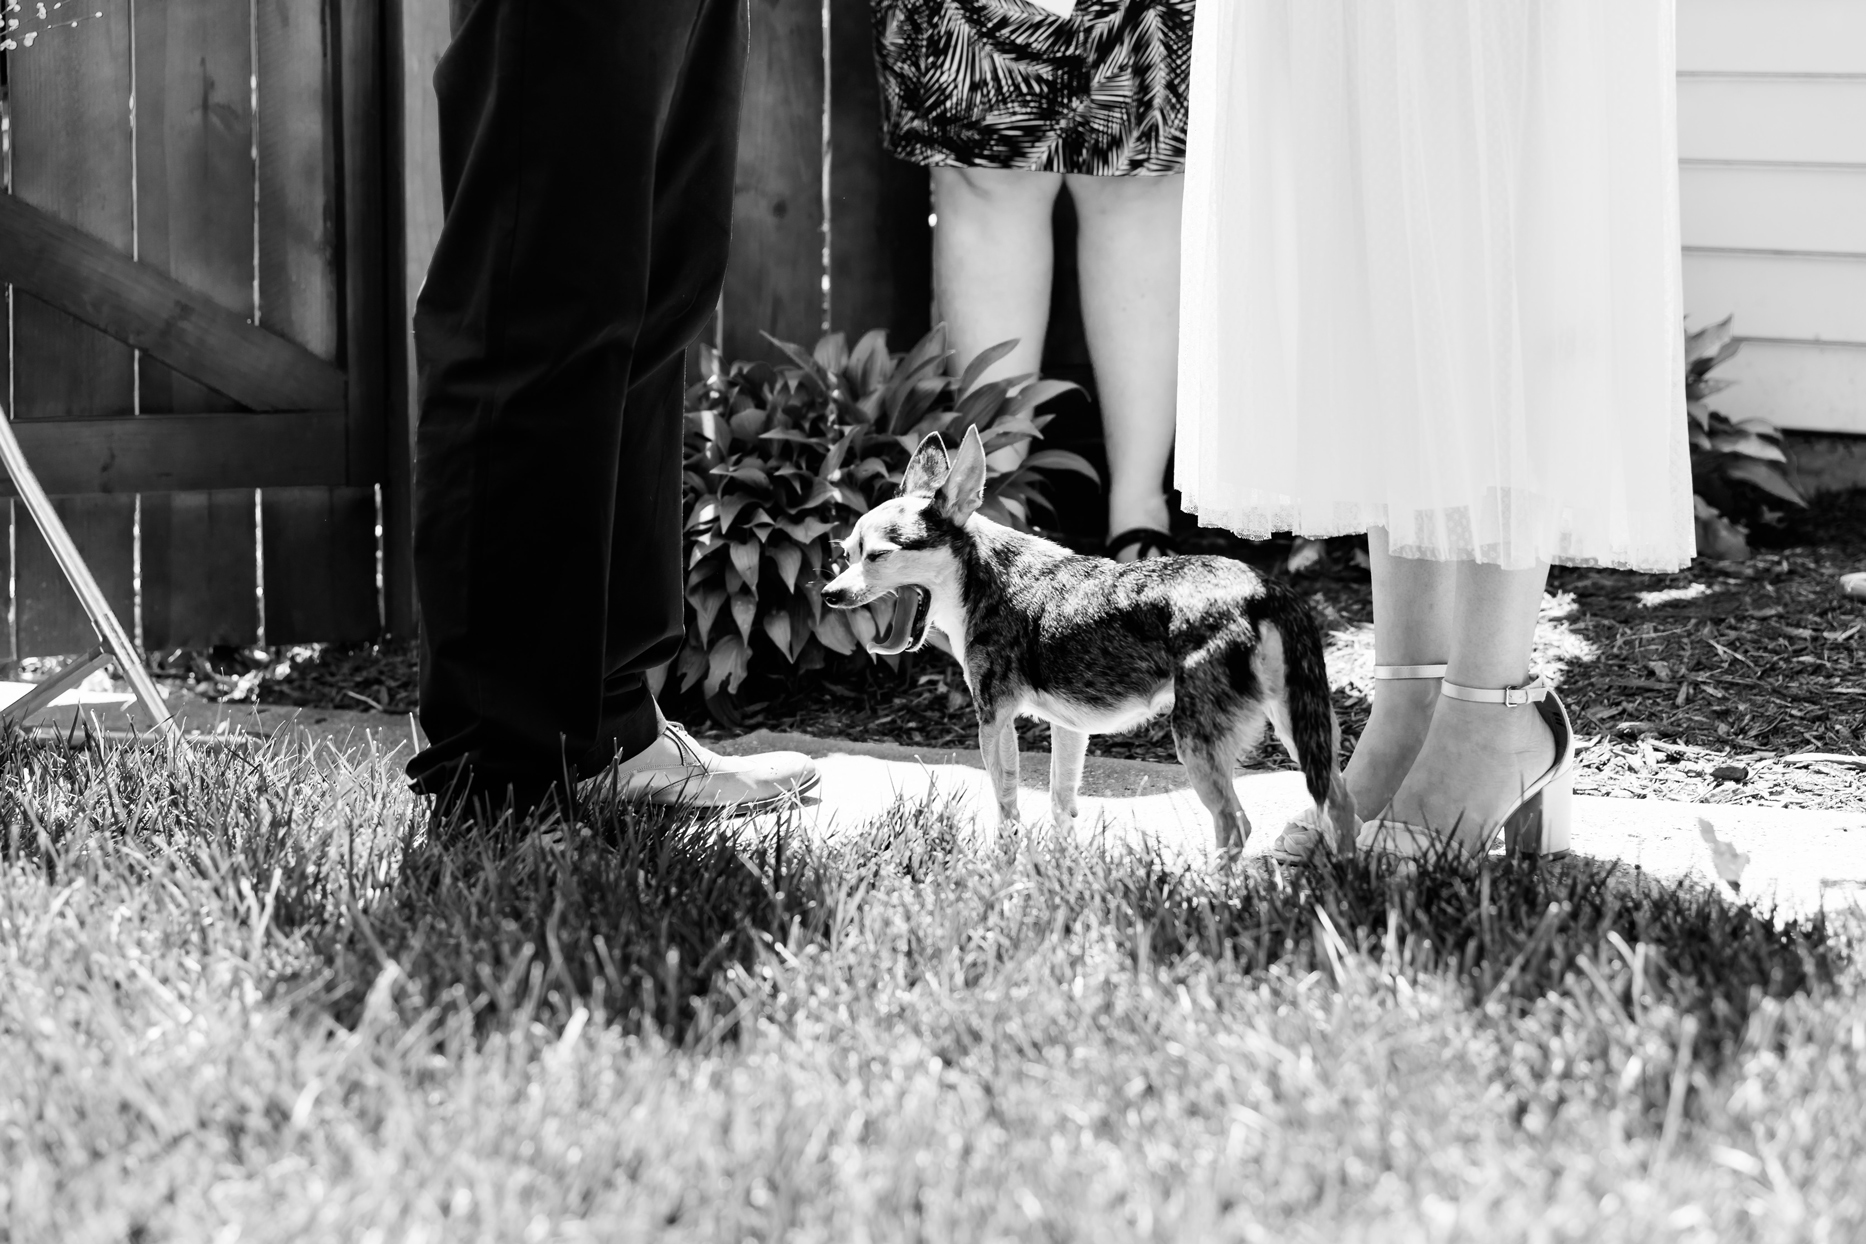 chiwawa yawing at bride and grooms feet during wedding ceremony